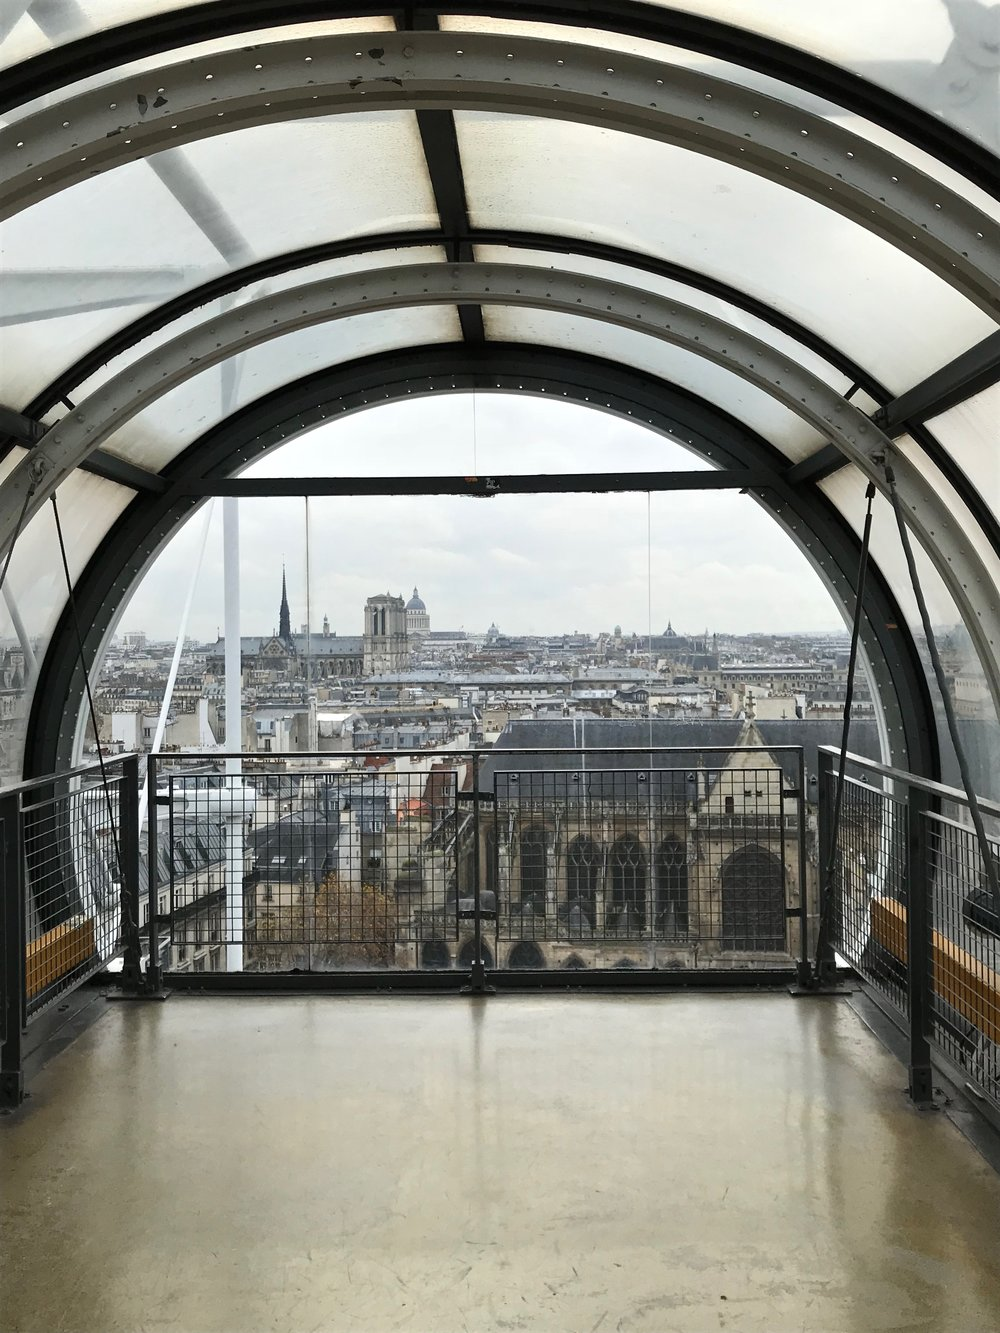 Photos that will make you want to visit the Centre Pompidou